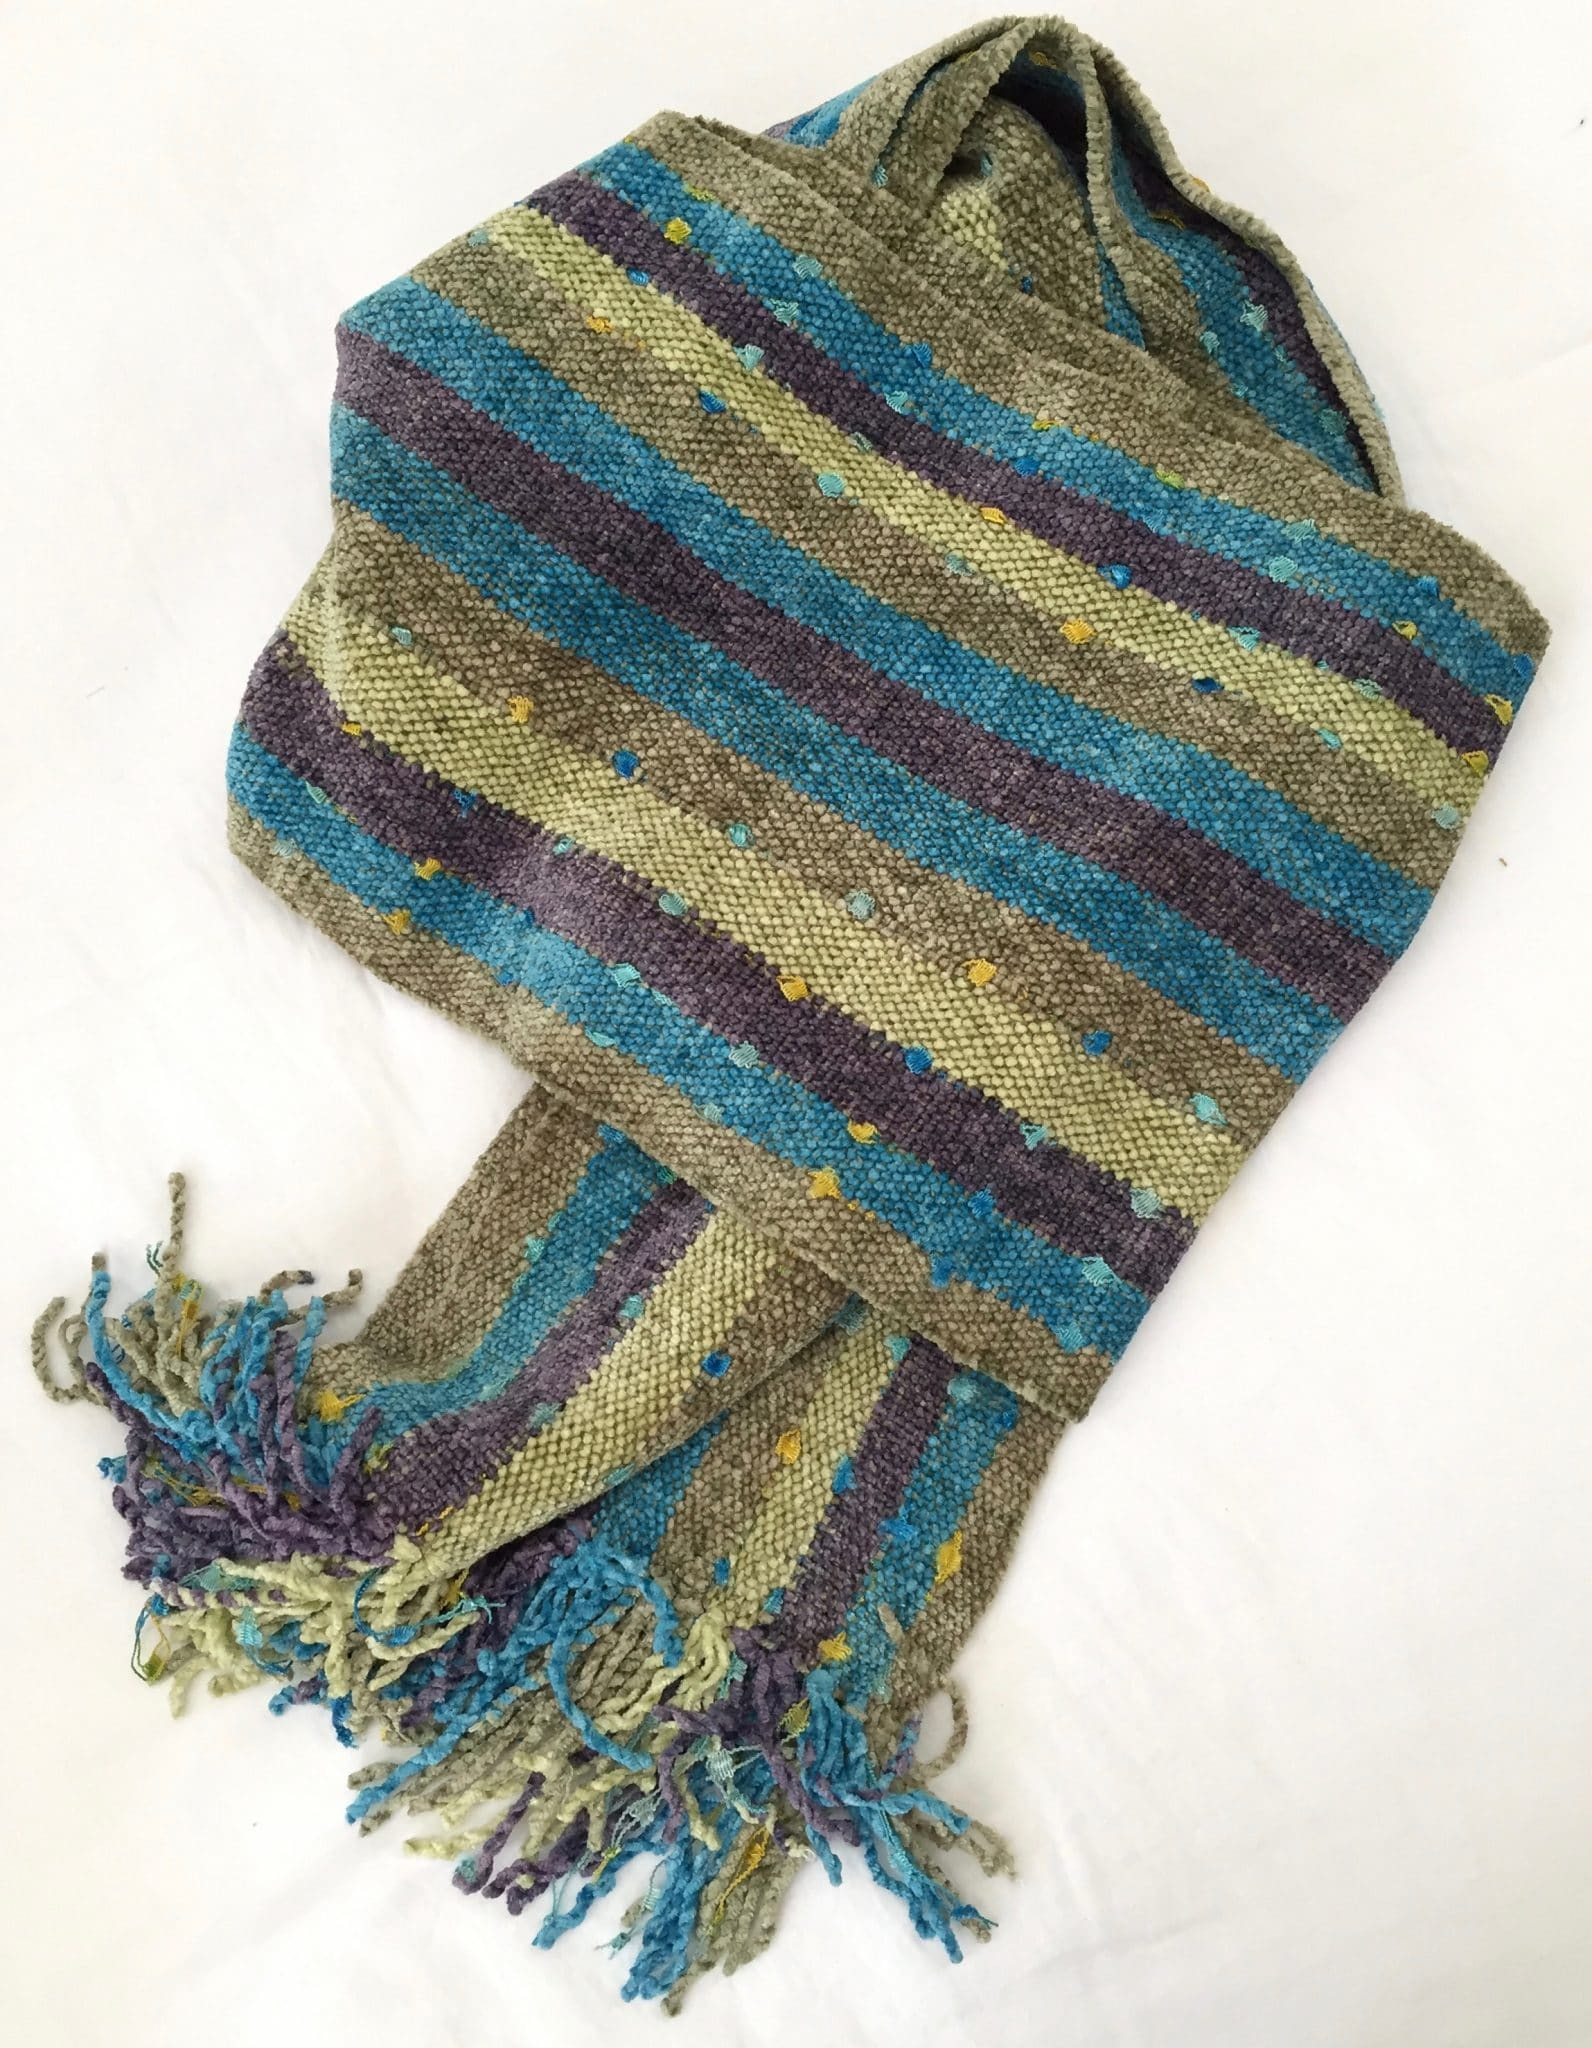 Lilac, Celestial Blue, Pale Green with Ornamental Yarn - Bamboo Chenille Handwoven Scarf 8 x 68